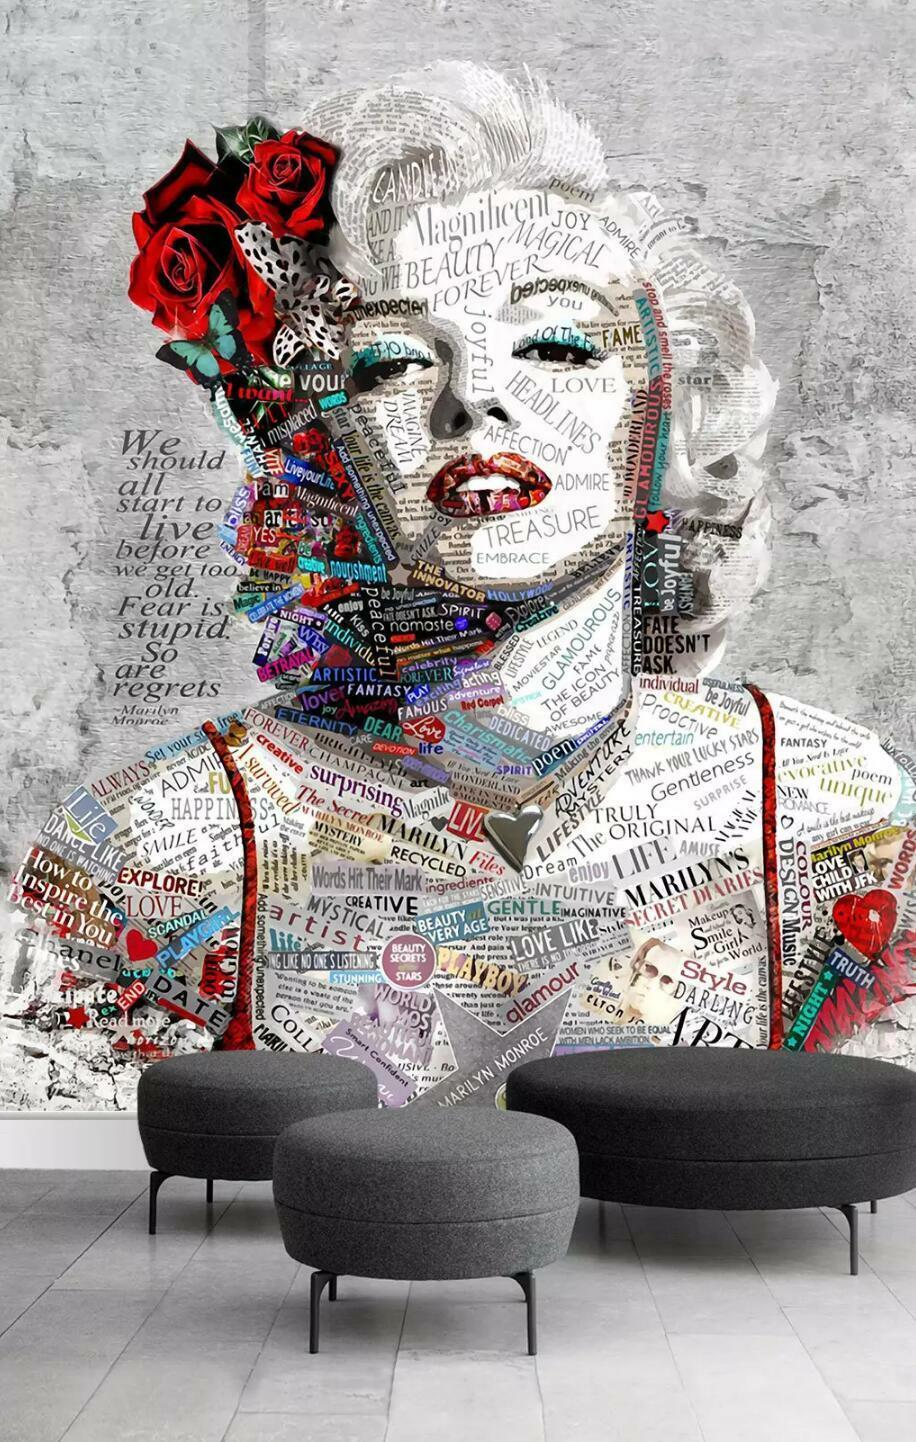 3D Actress Poster 56 Wall Paper Exclusive MXY Wallpaper Mural Decal Indoor wall